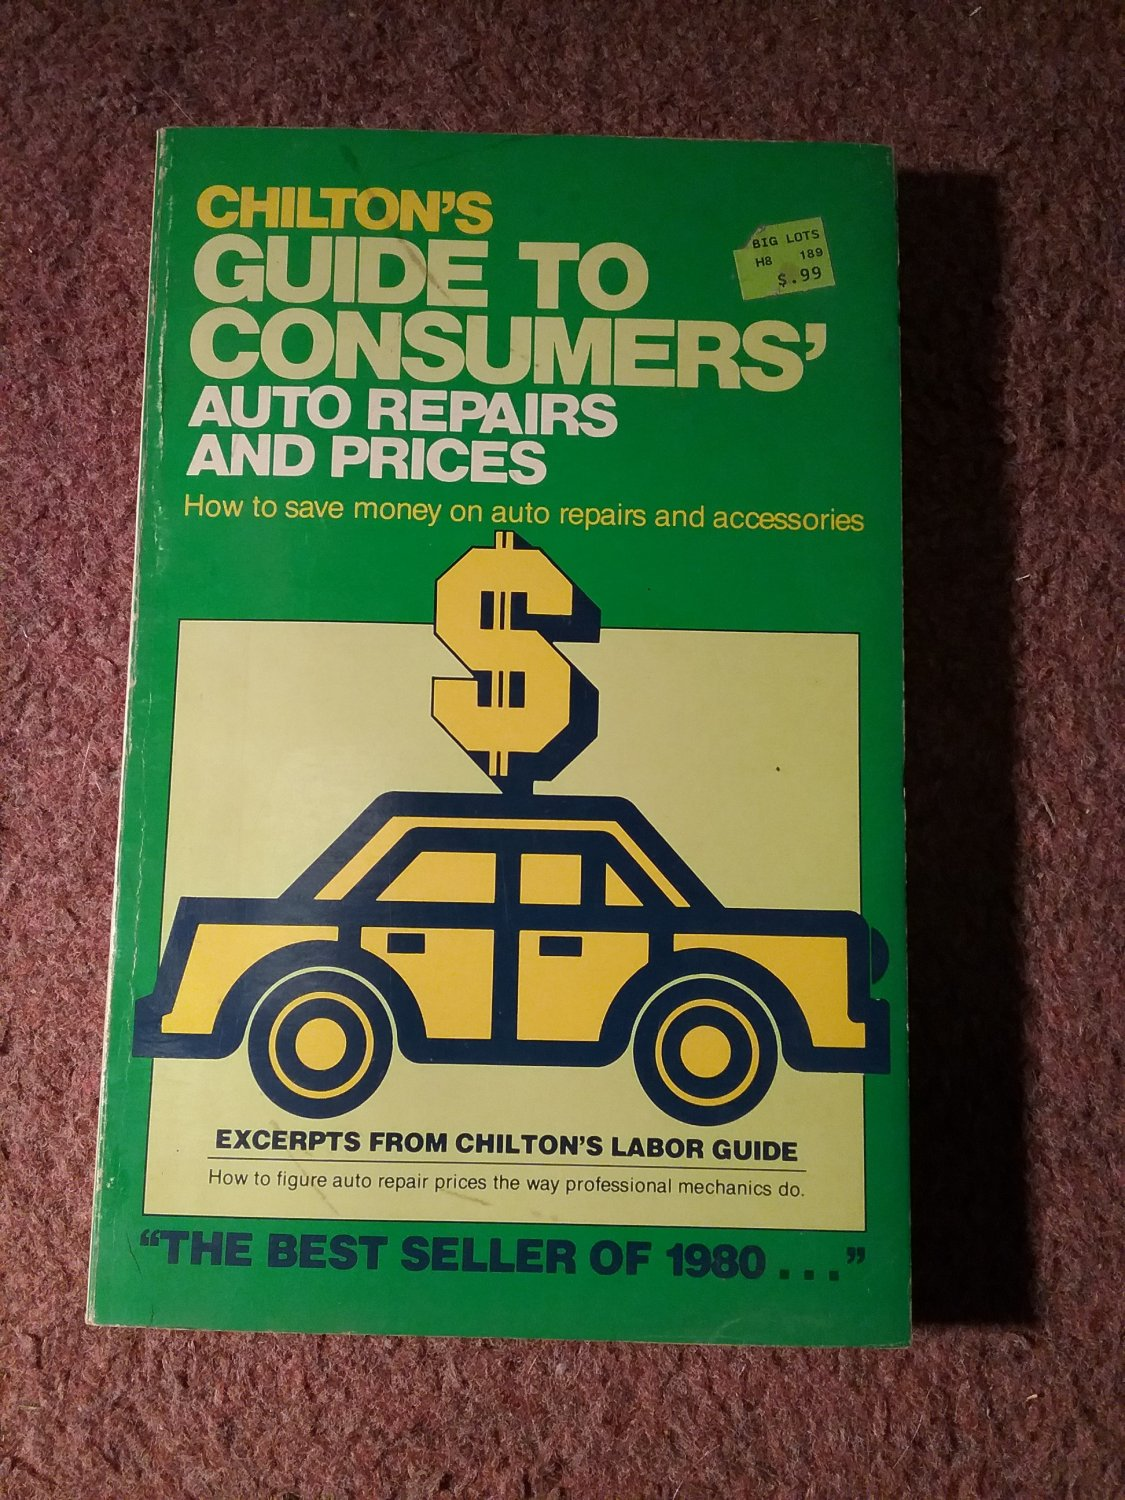 Vintage 1980 Chilton's Guide to Consumers' Auto Repair Prices 070716279